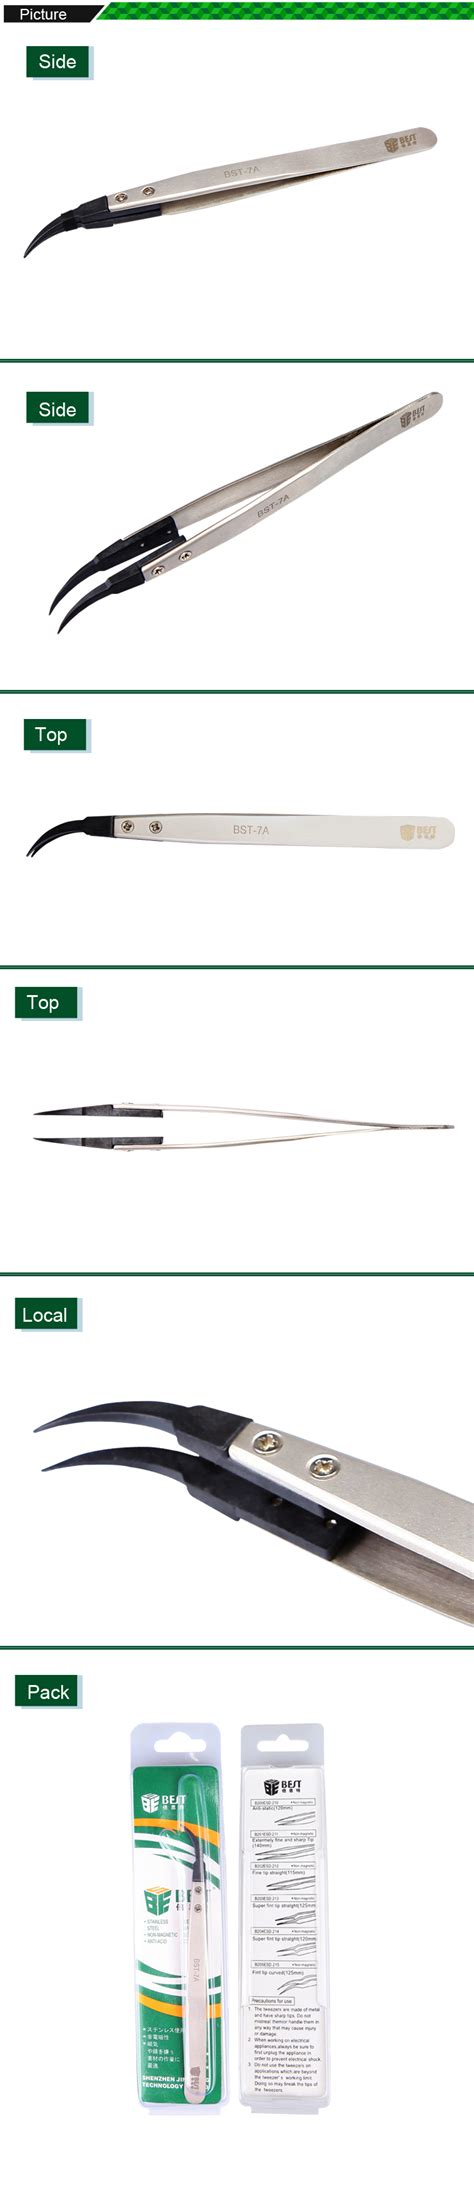 Jepitan Anti Static Model Curved Jakemy High Quality bst 7a anti static curved tweezers with replaceable tip